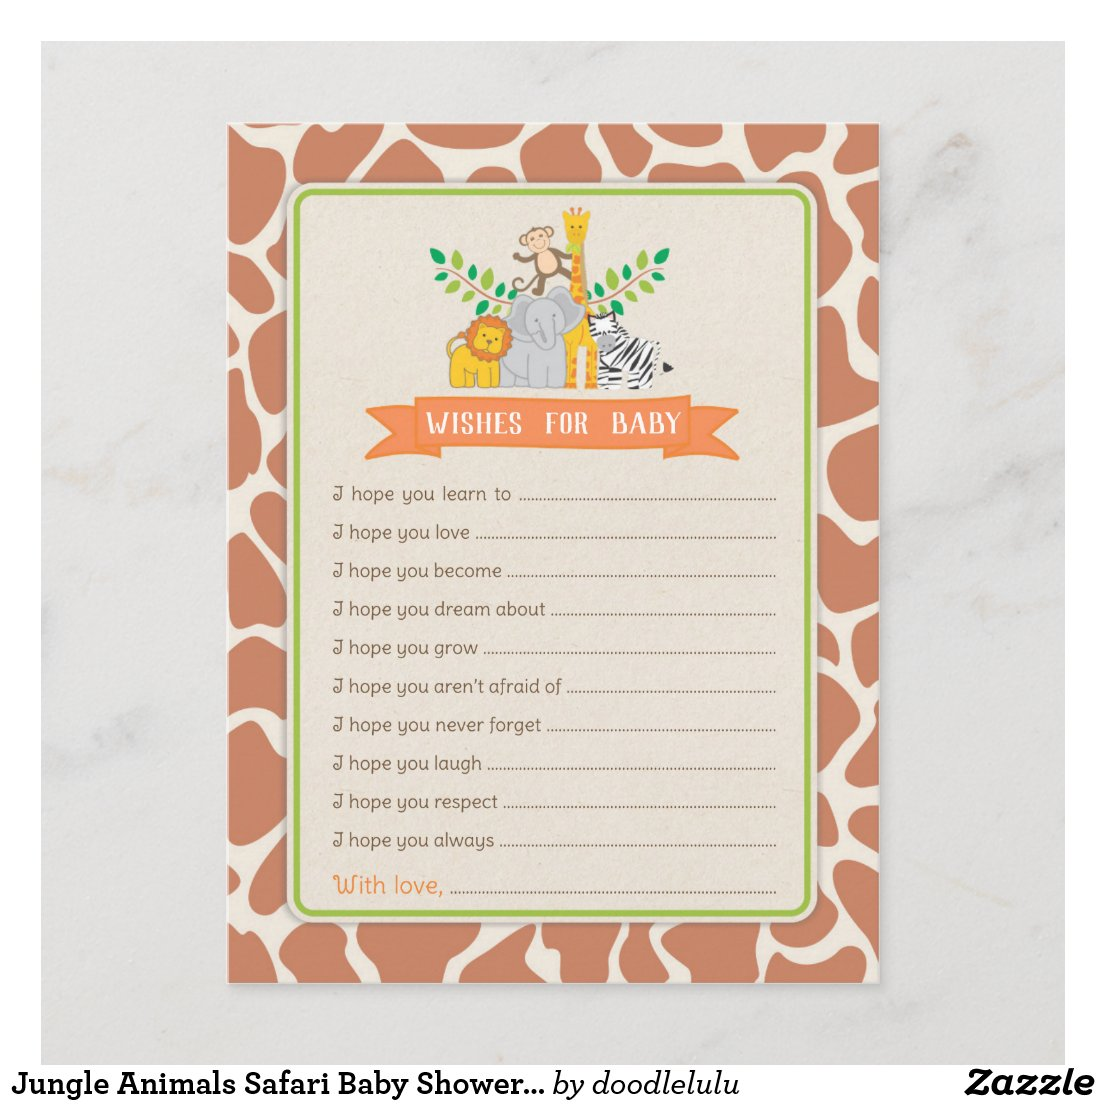 Jungle Animals Safari Baby Shower Wishes for Baby Advice Card